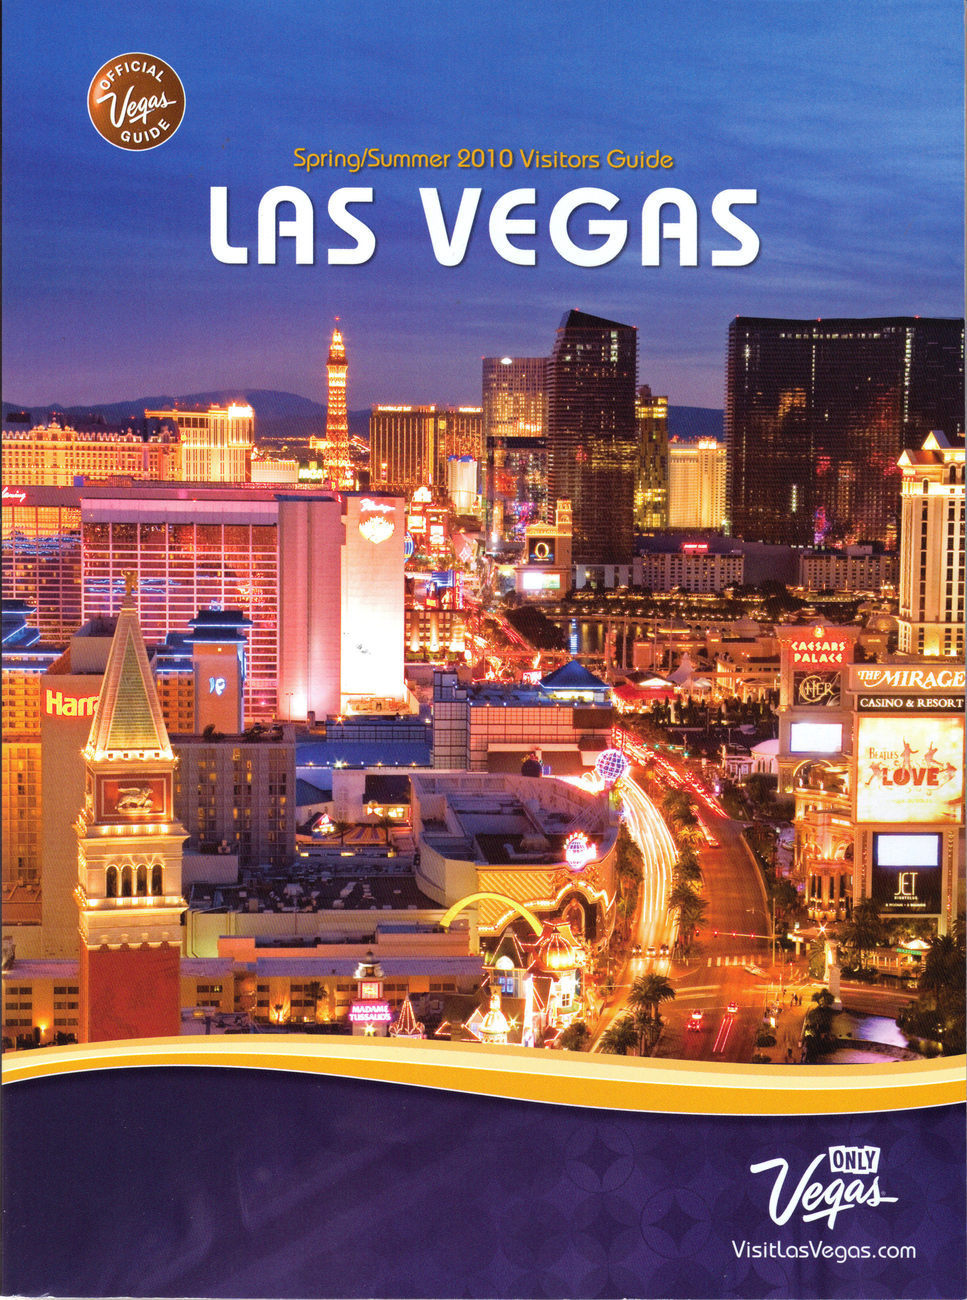 2010 Spring/Summer Visitors Guide: LAS VEGAS